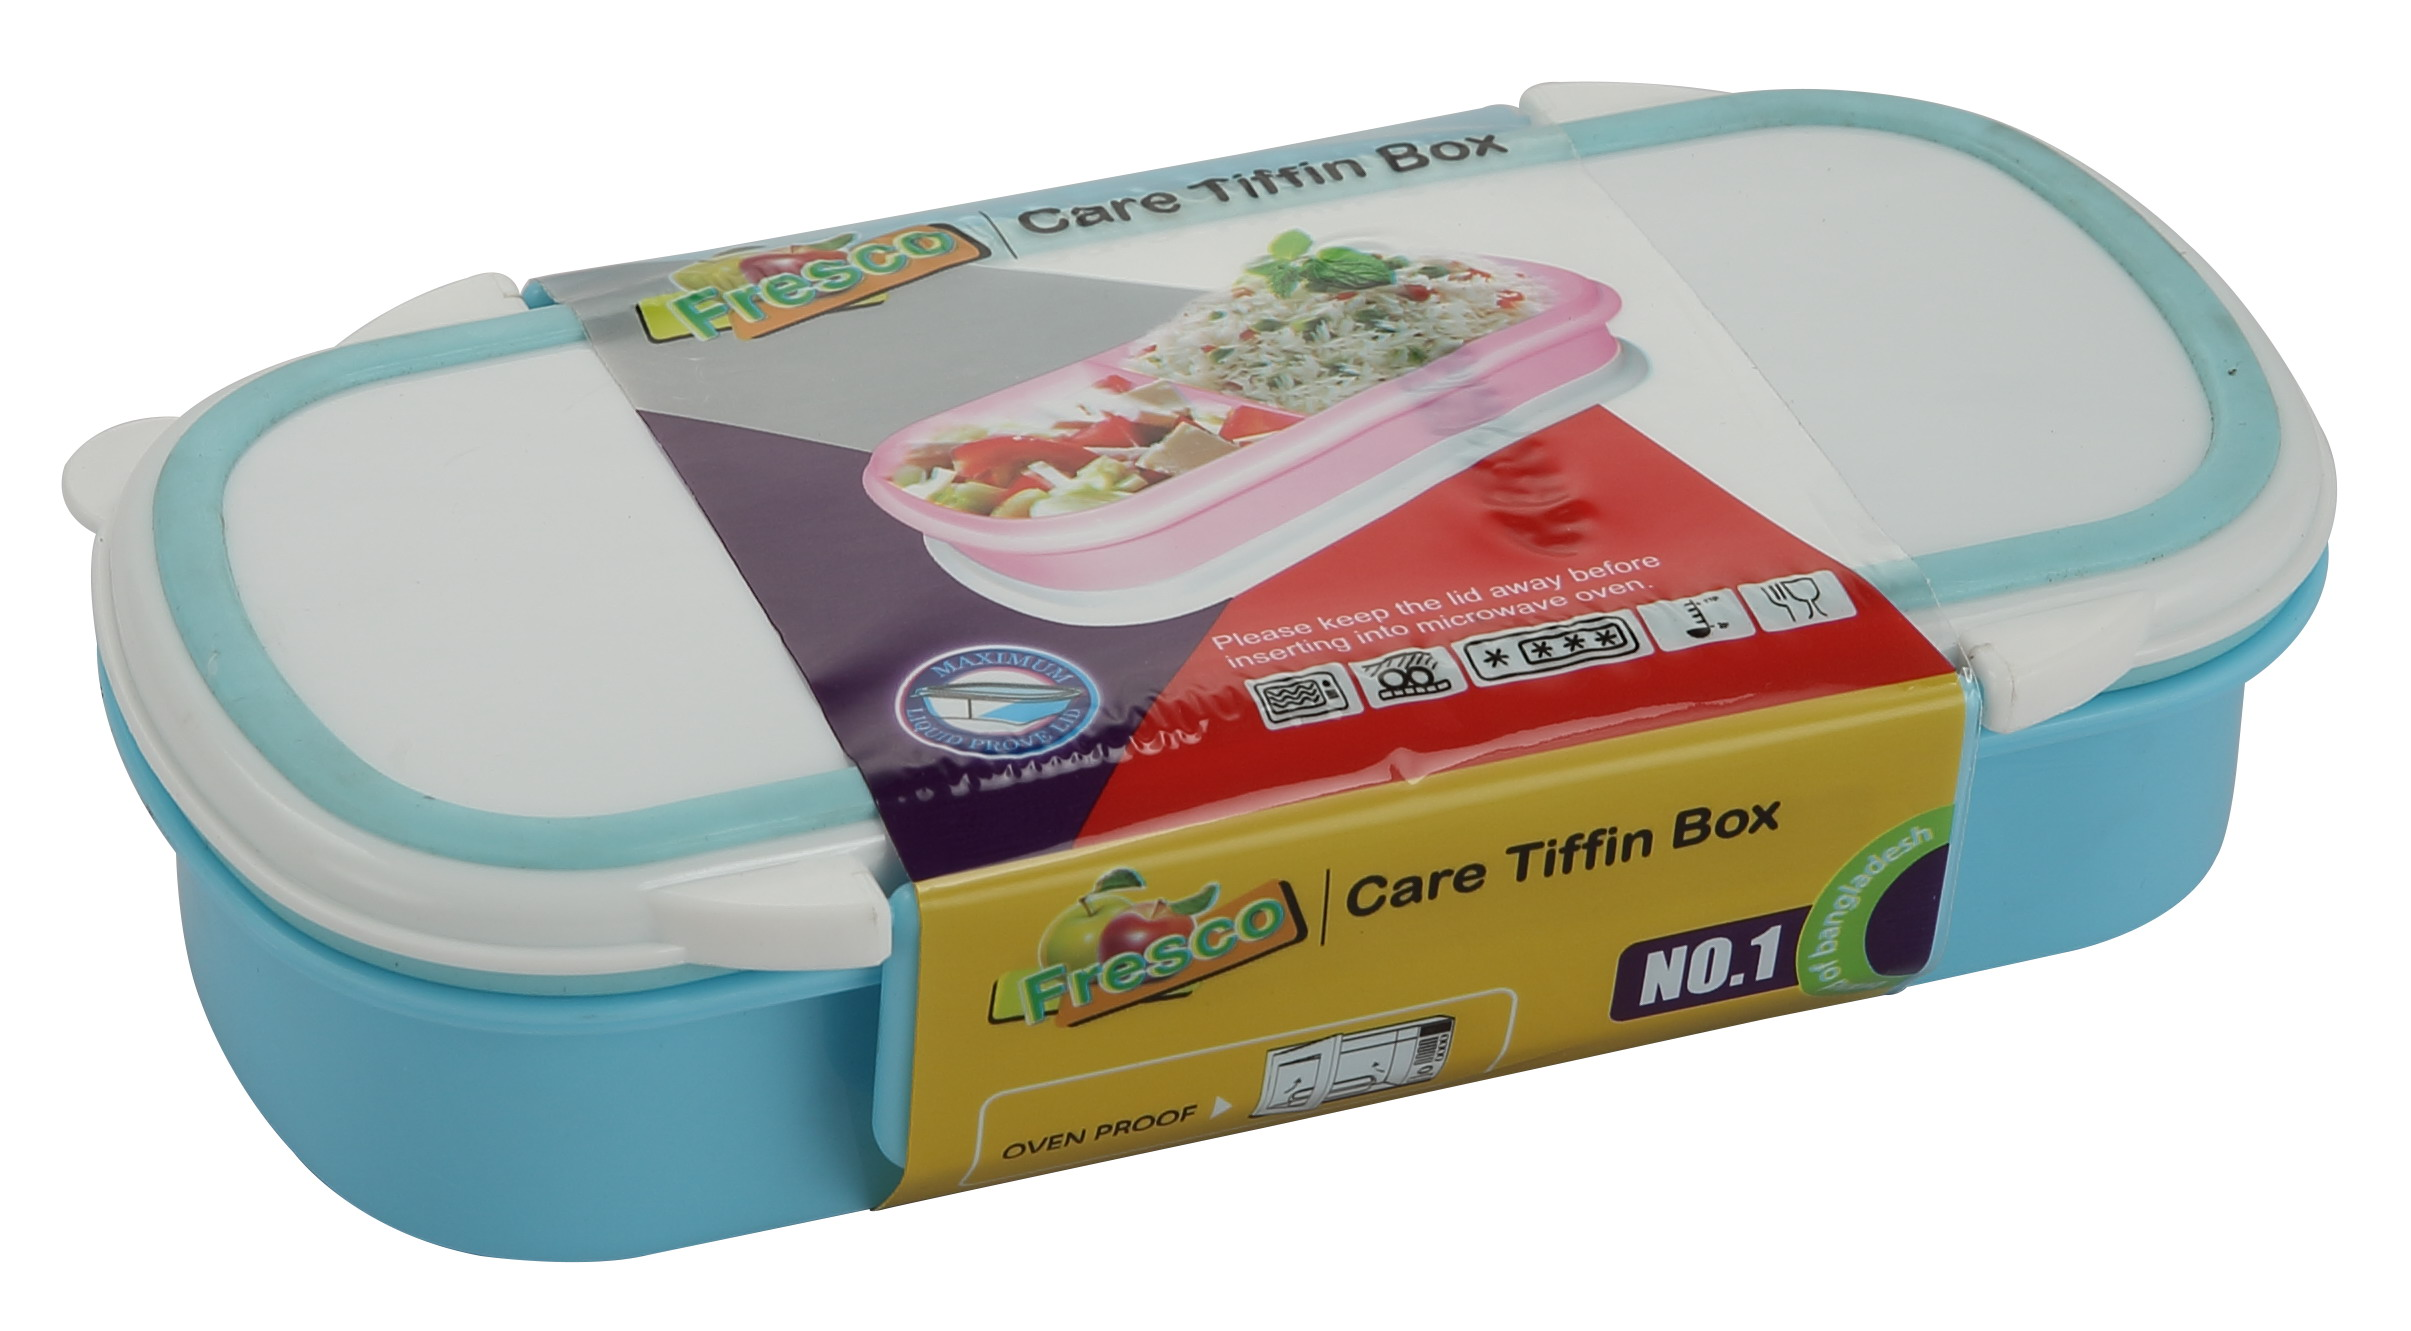 Care Tiffin Box Medium